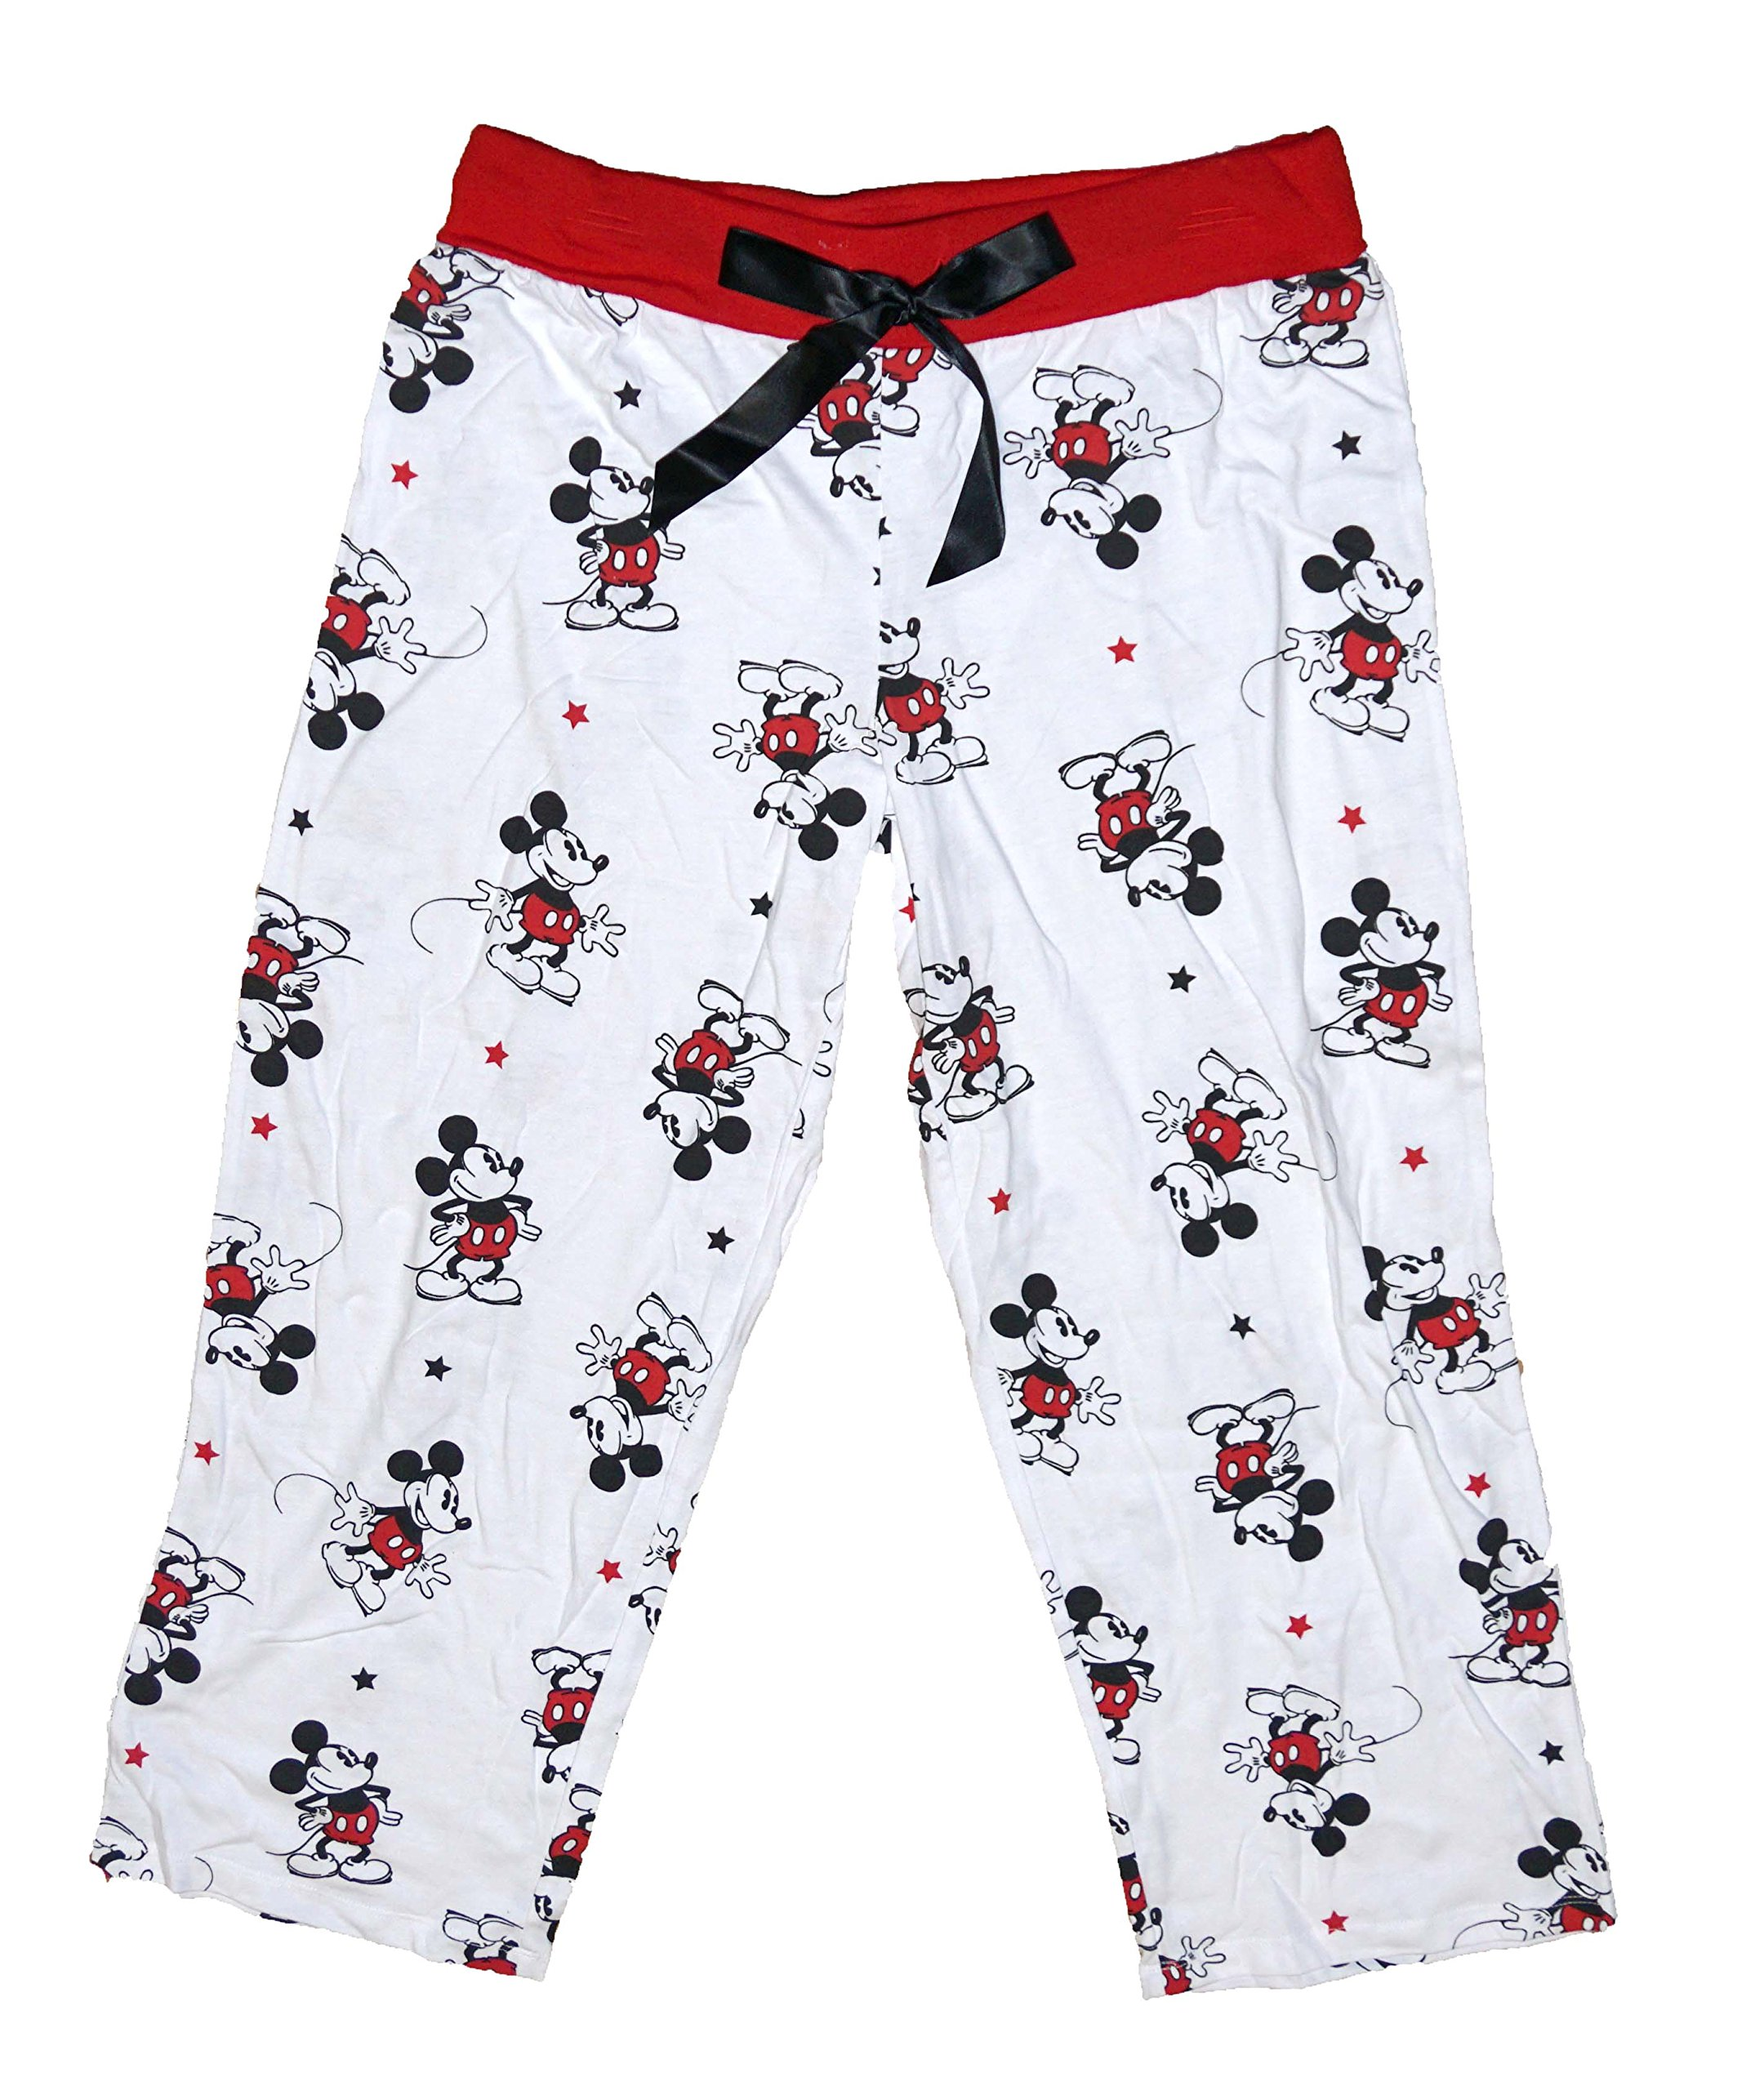 Disney Mickey Mouse Womens Pajama Pant With Classic Mickey Print - Red White